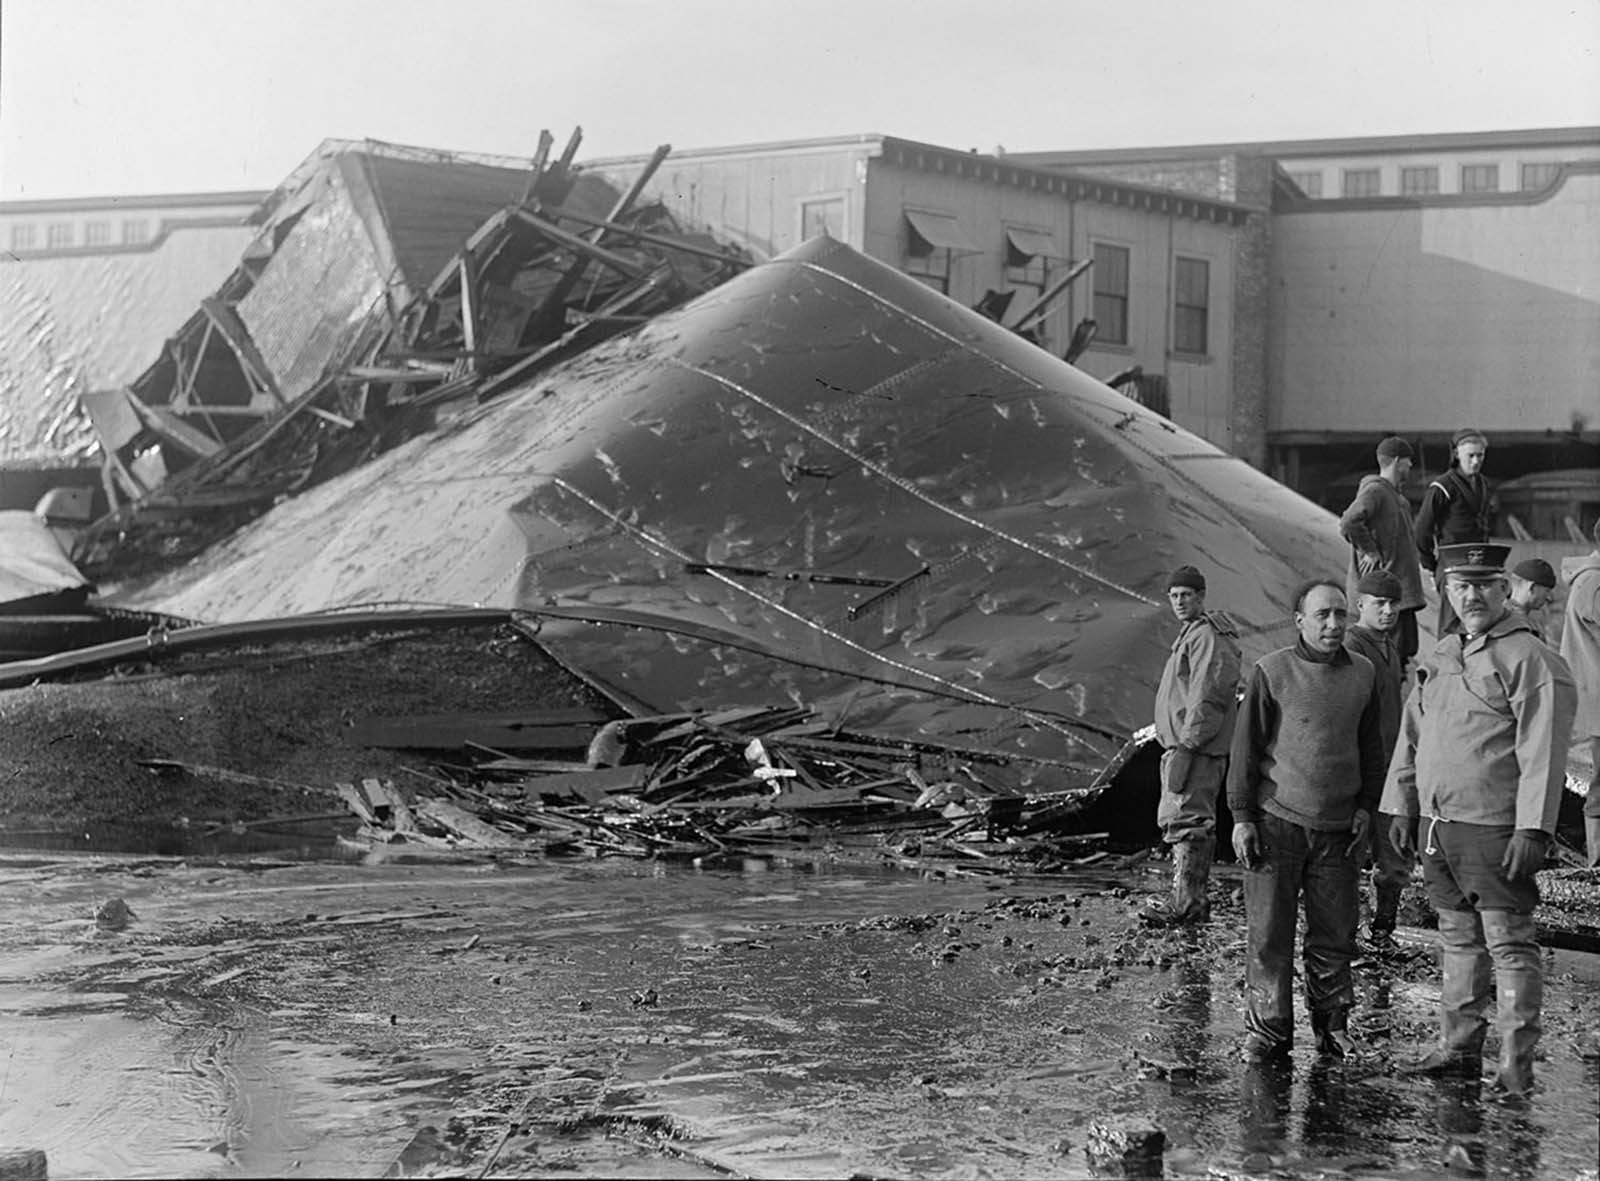 Section of tank after Molasses Disaster explosion at 1 p.m. on January 15, 1919.